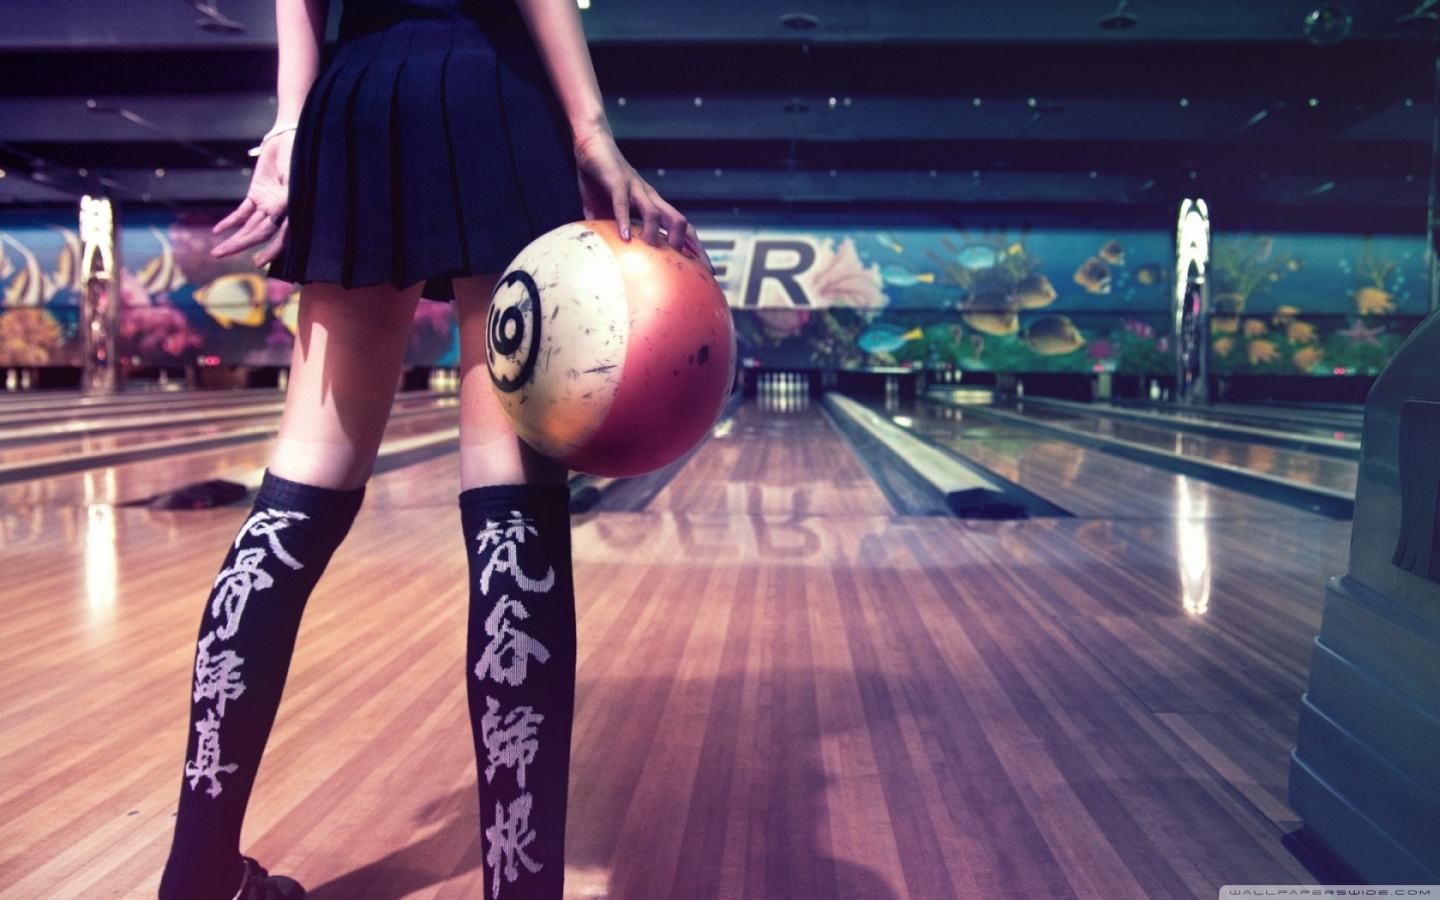 1440x900 - Bowling Wallpapers 12